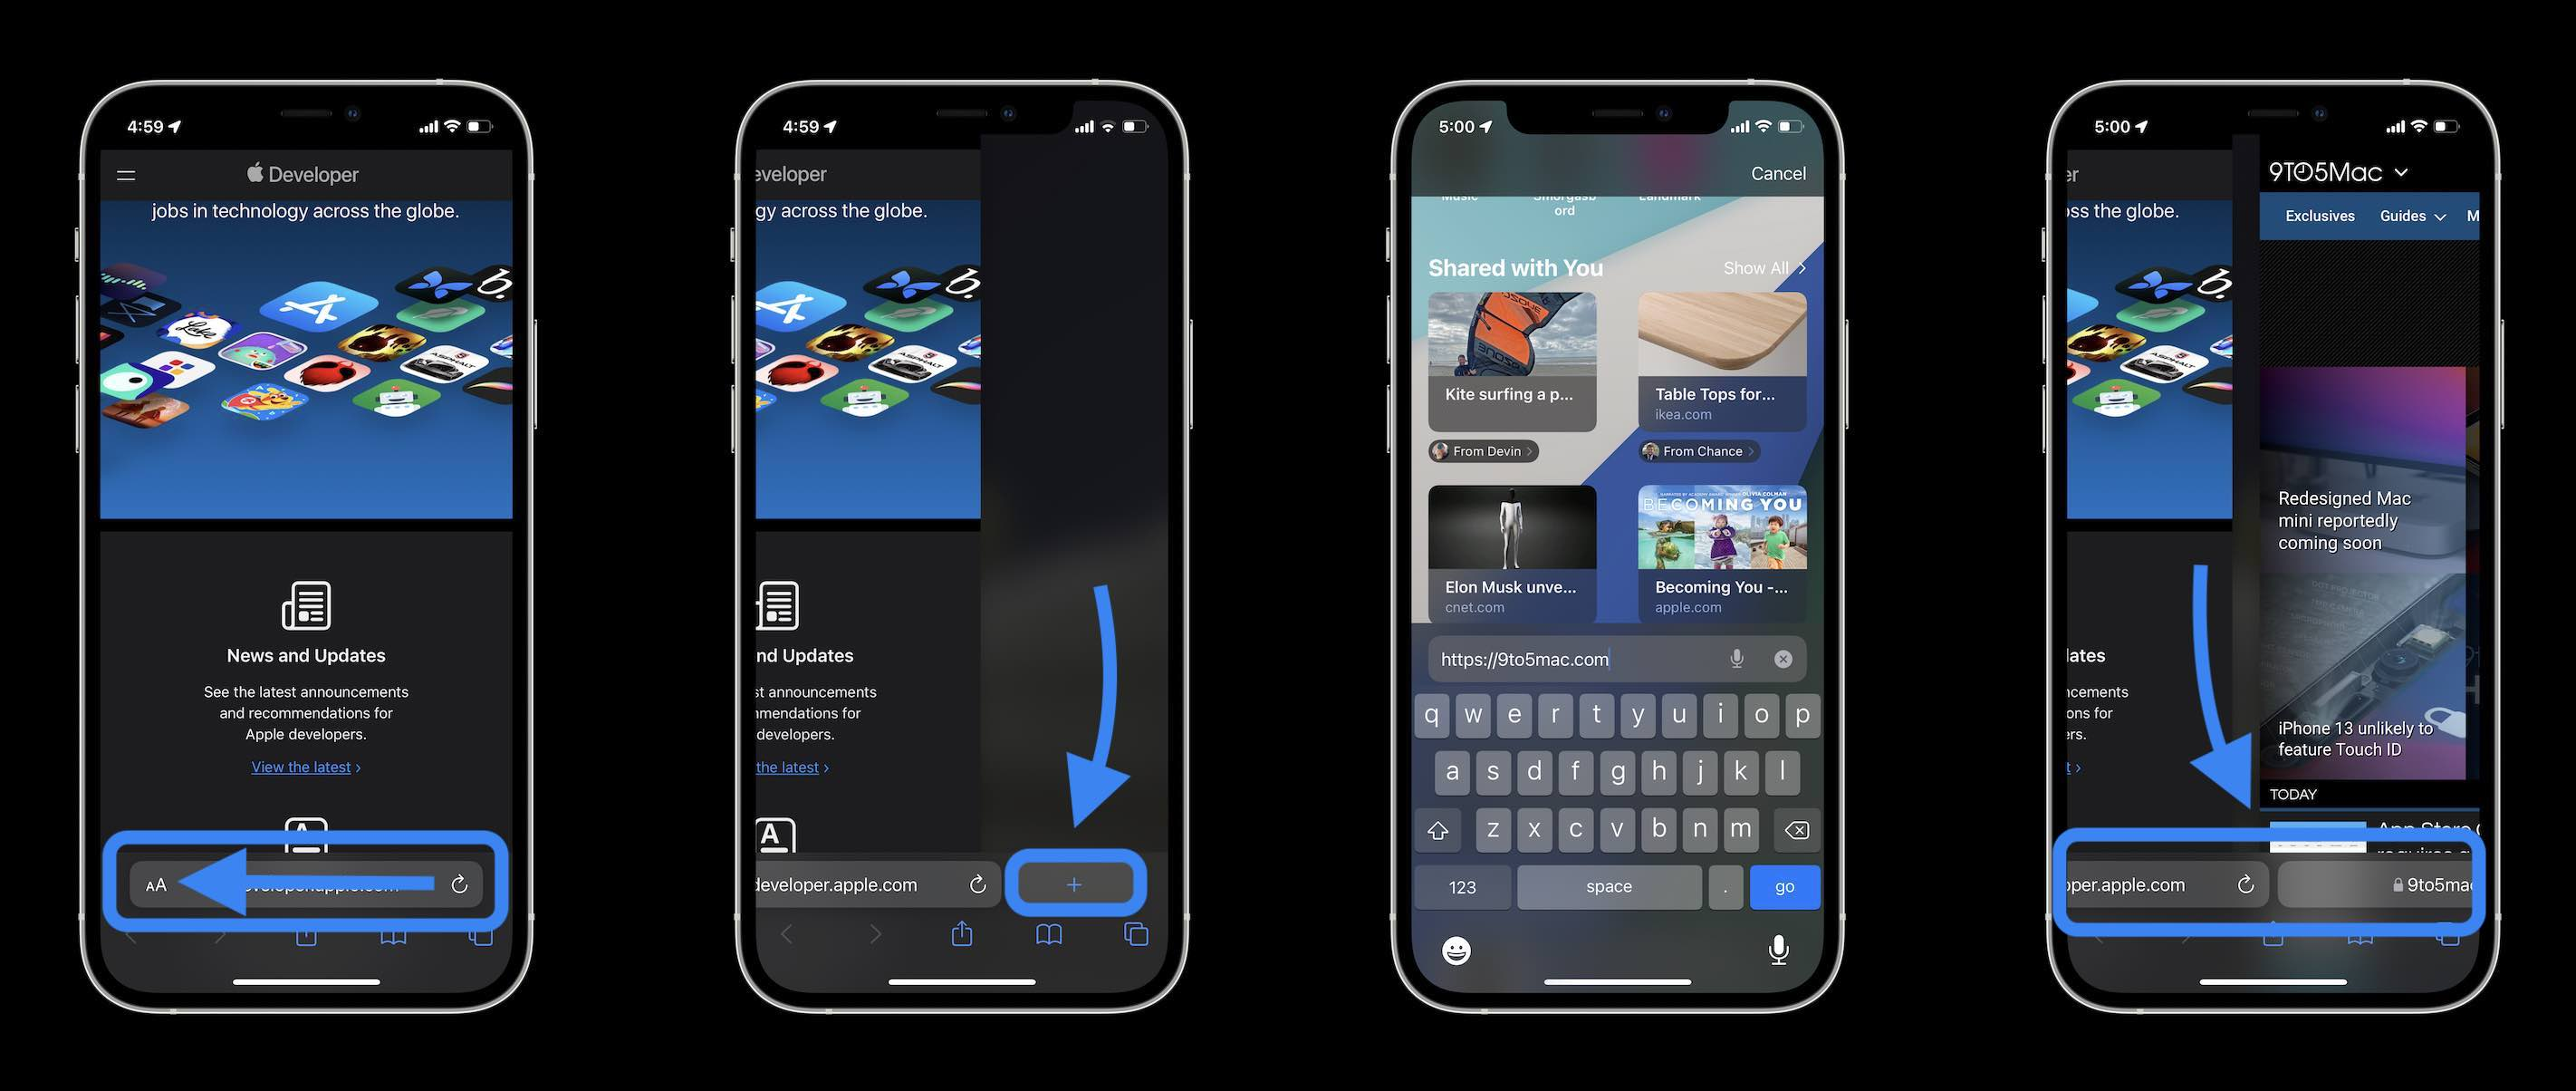 How Safari in iOS 15 works - swipe on the search/tab bar to open a new page or switch between open tabs